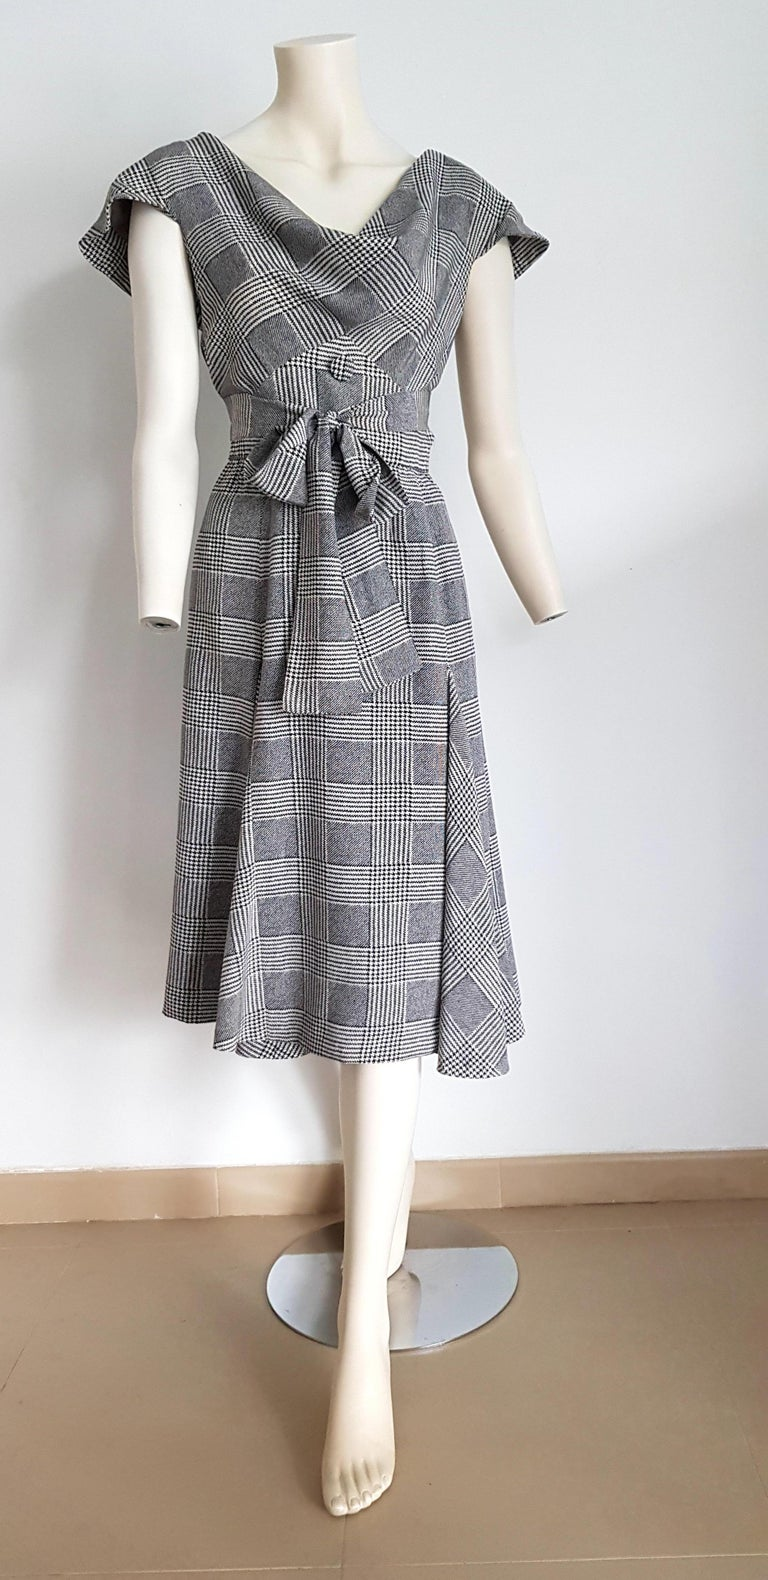 VALENTINO black and white Prince of Wales, 2 bands on the chest, 3 buttons waistband on the back, silk dress - Unworn, New. .. SIZE: equivalent to about Small / Medium, please review approx measurements as follows in cm: lenght 112, chest underarm